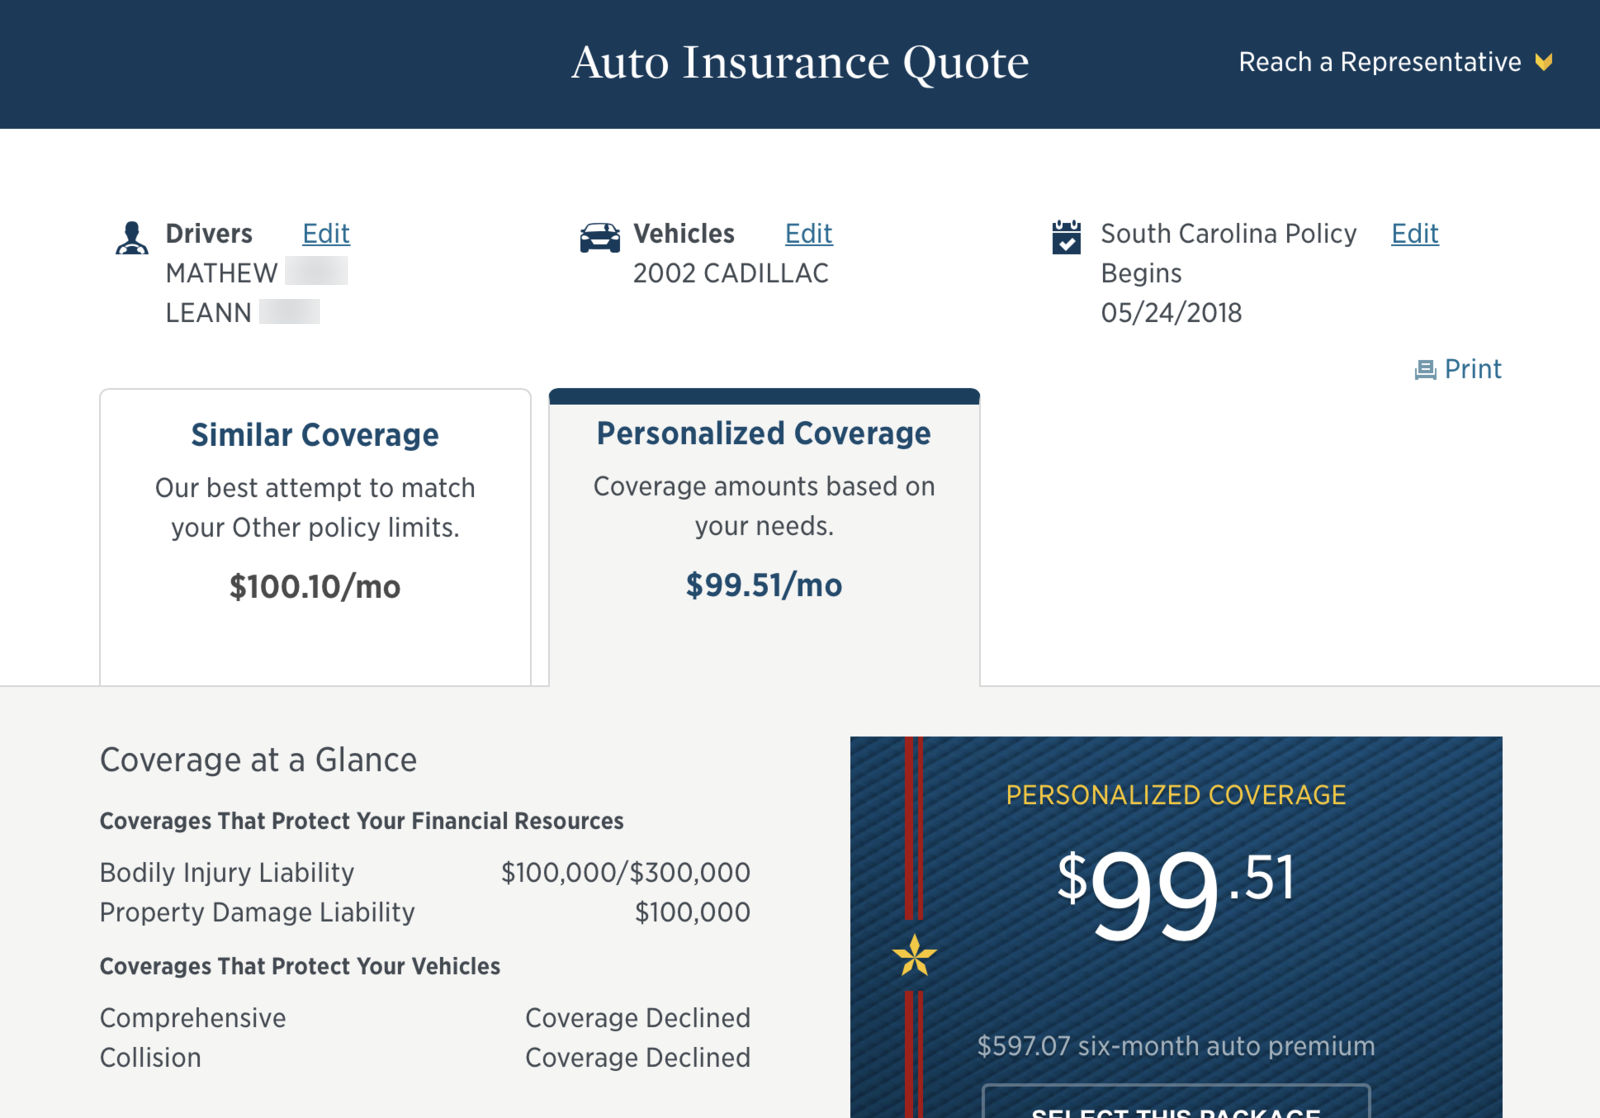 USAA quote results